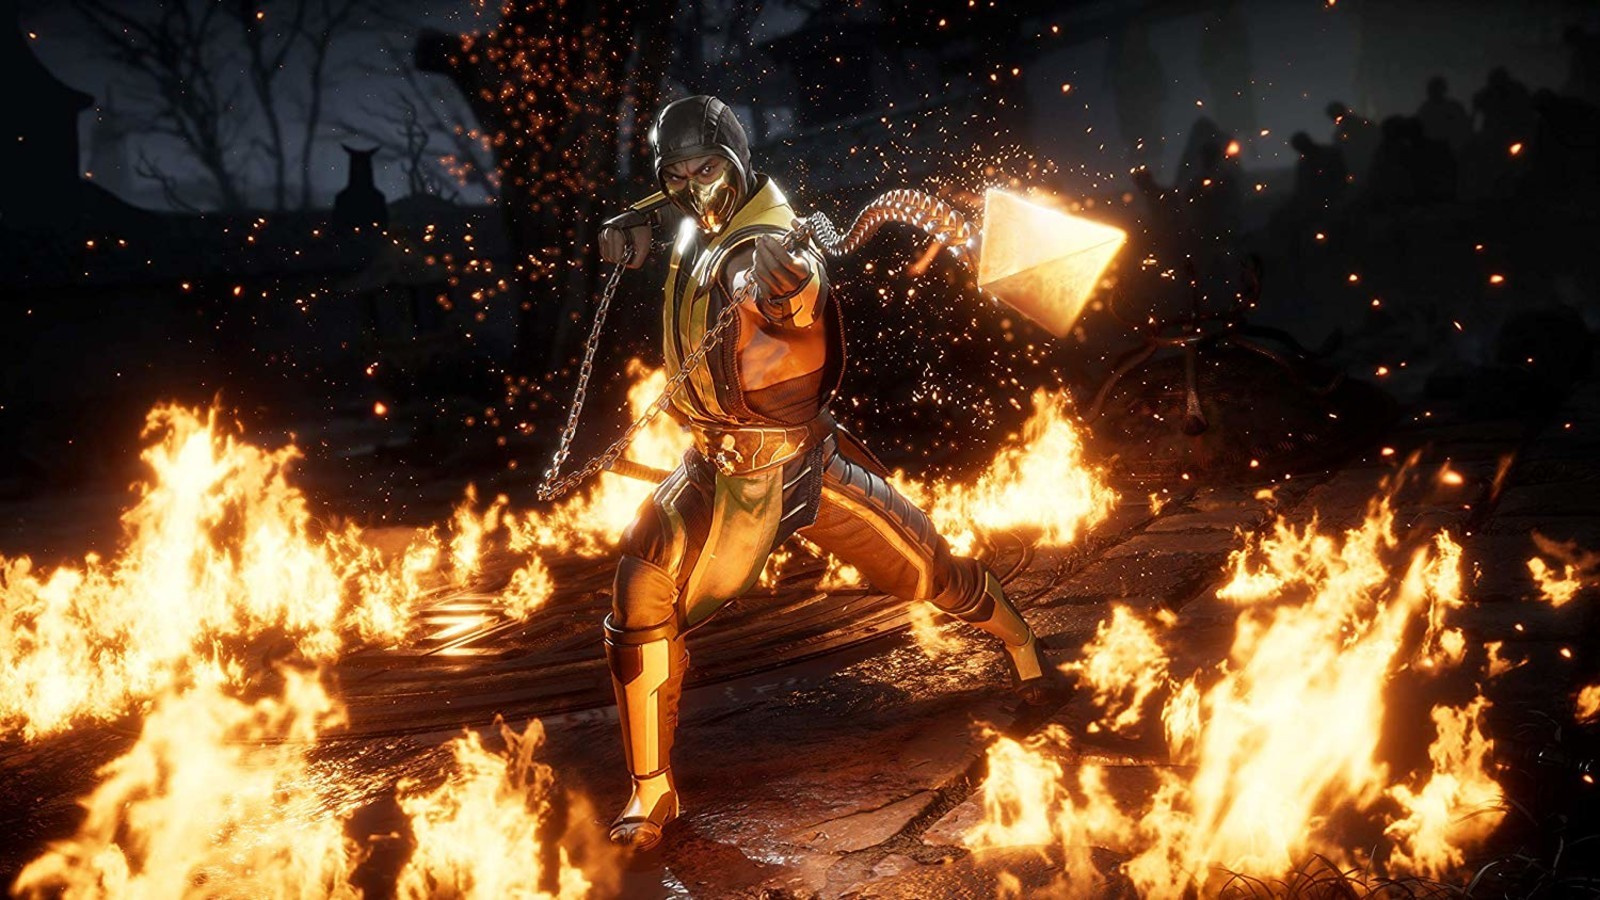 Mortal Kombat 11 reveals the very M-rated Joker fatality